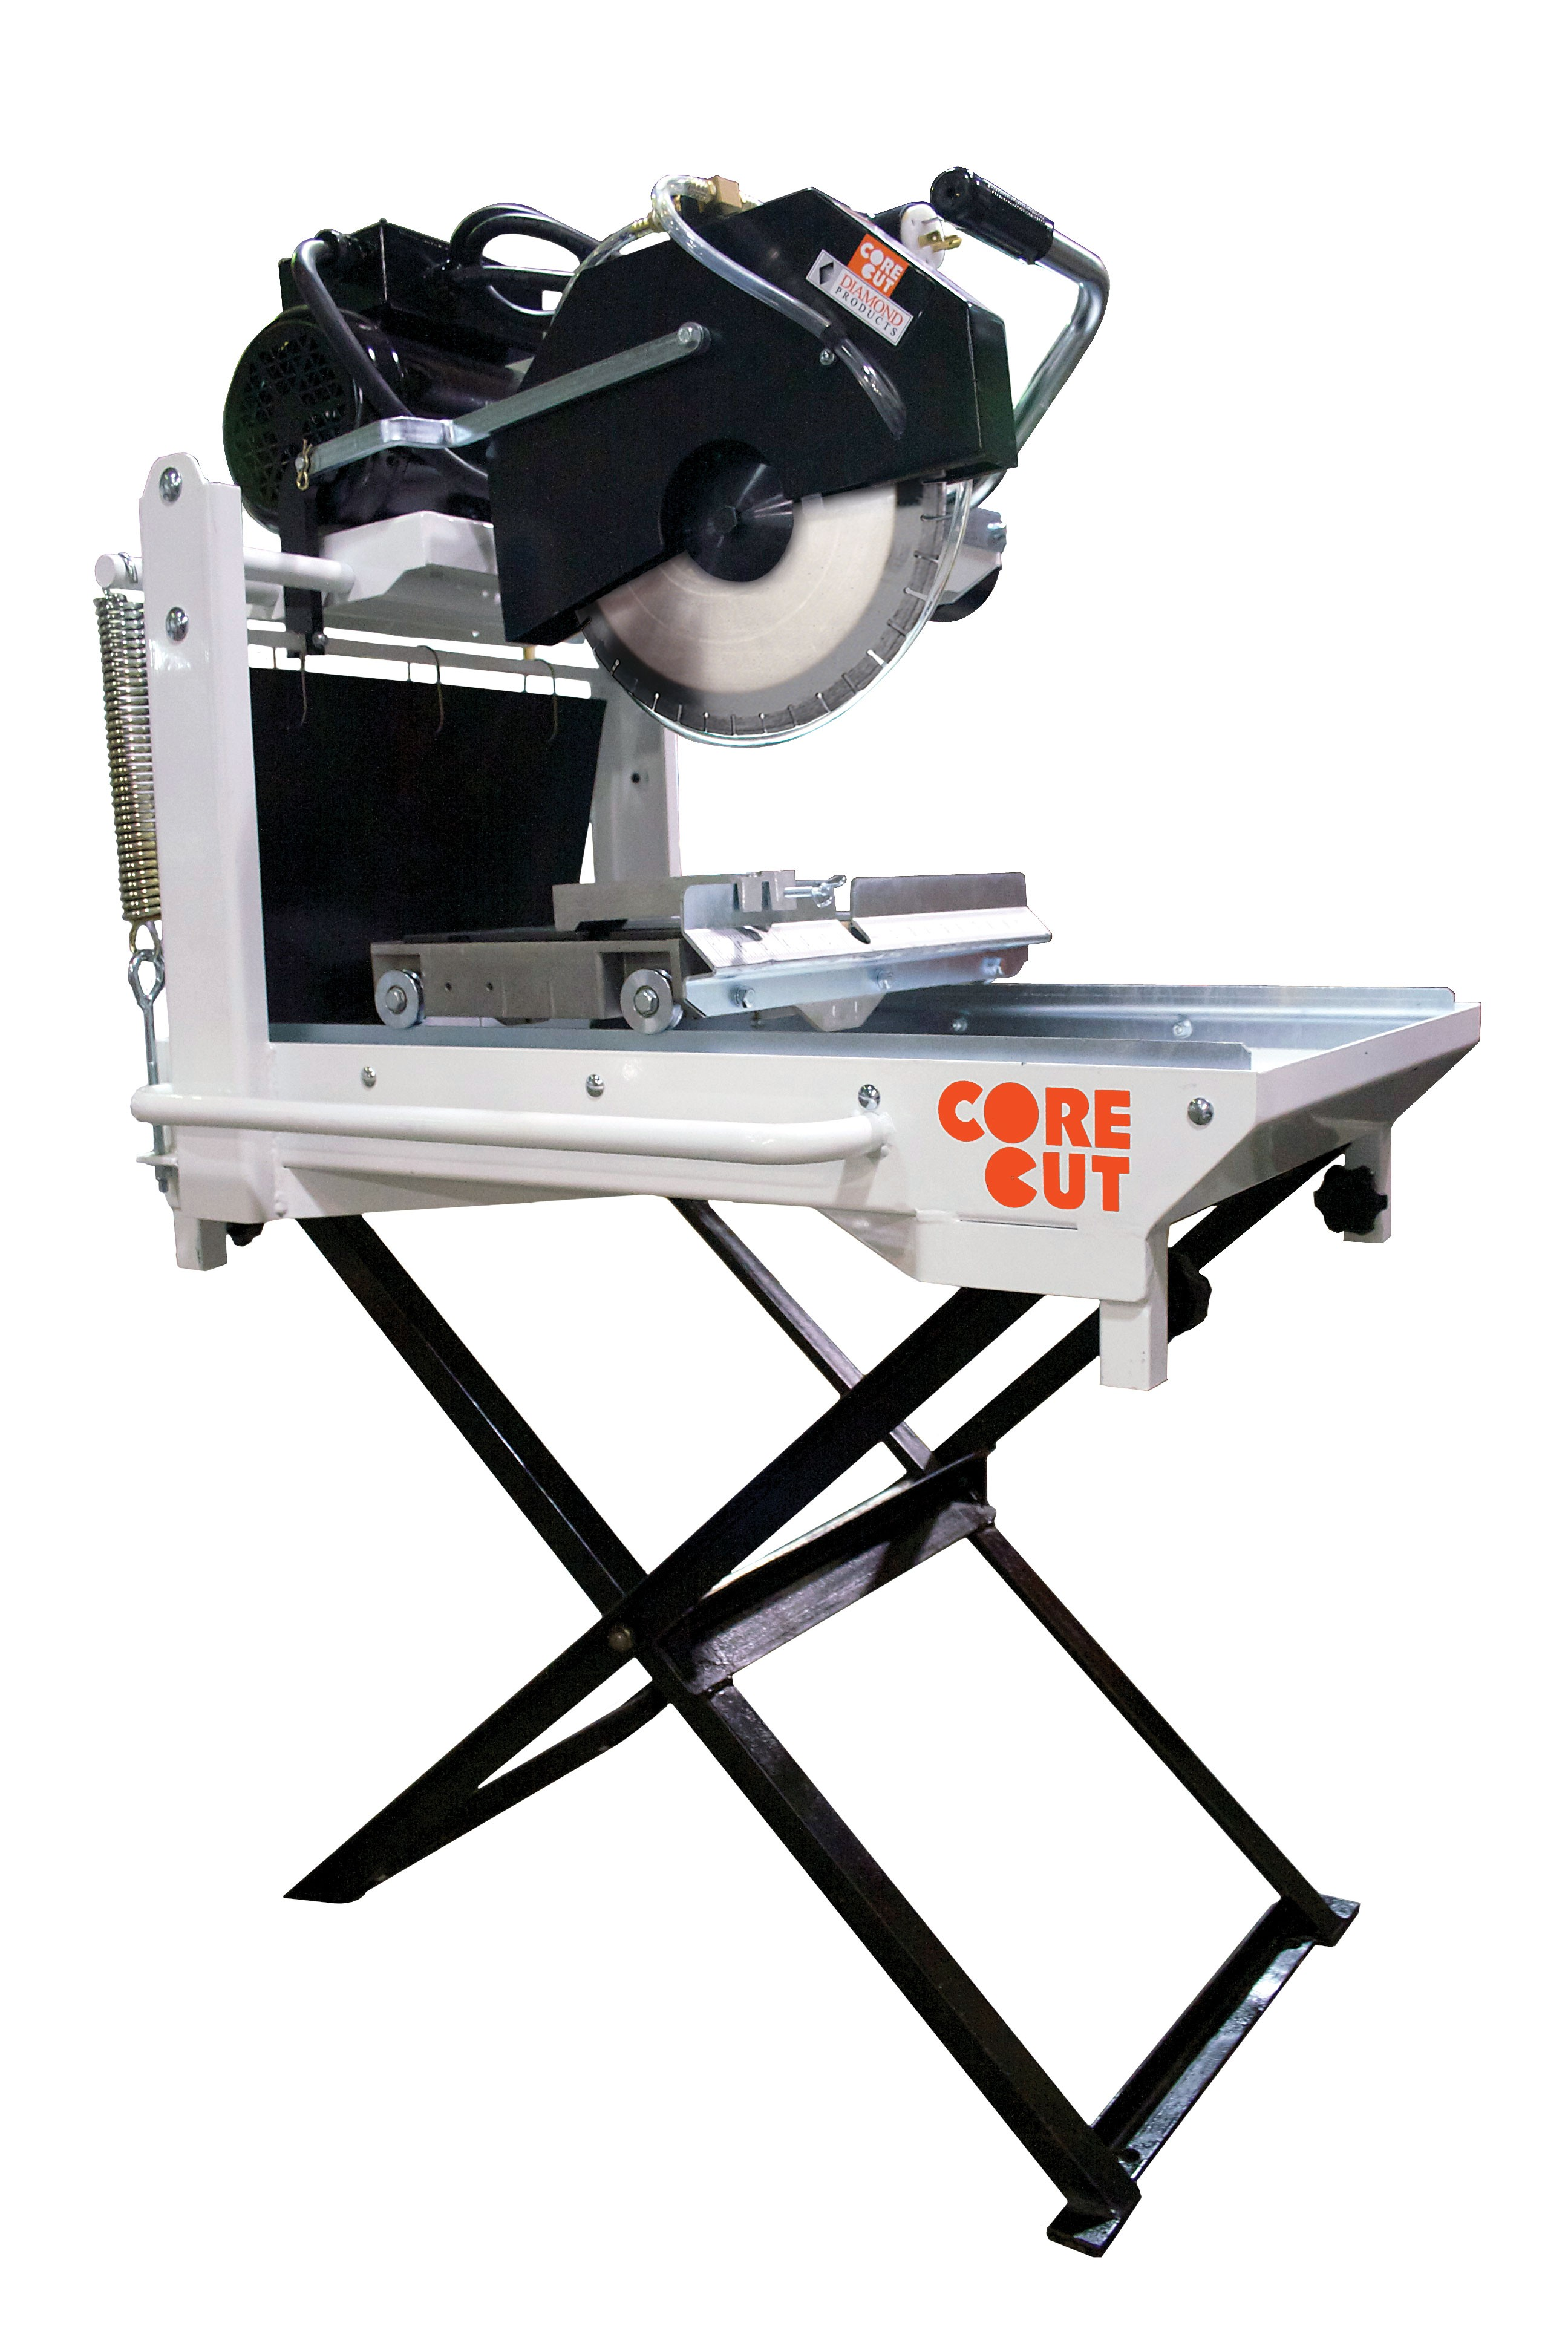 CC5000MXL2 Shown with Optional Folding Stand